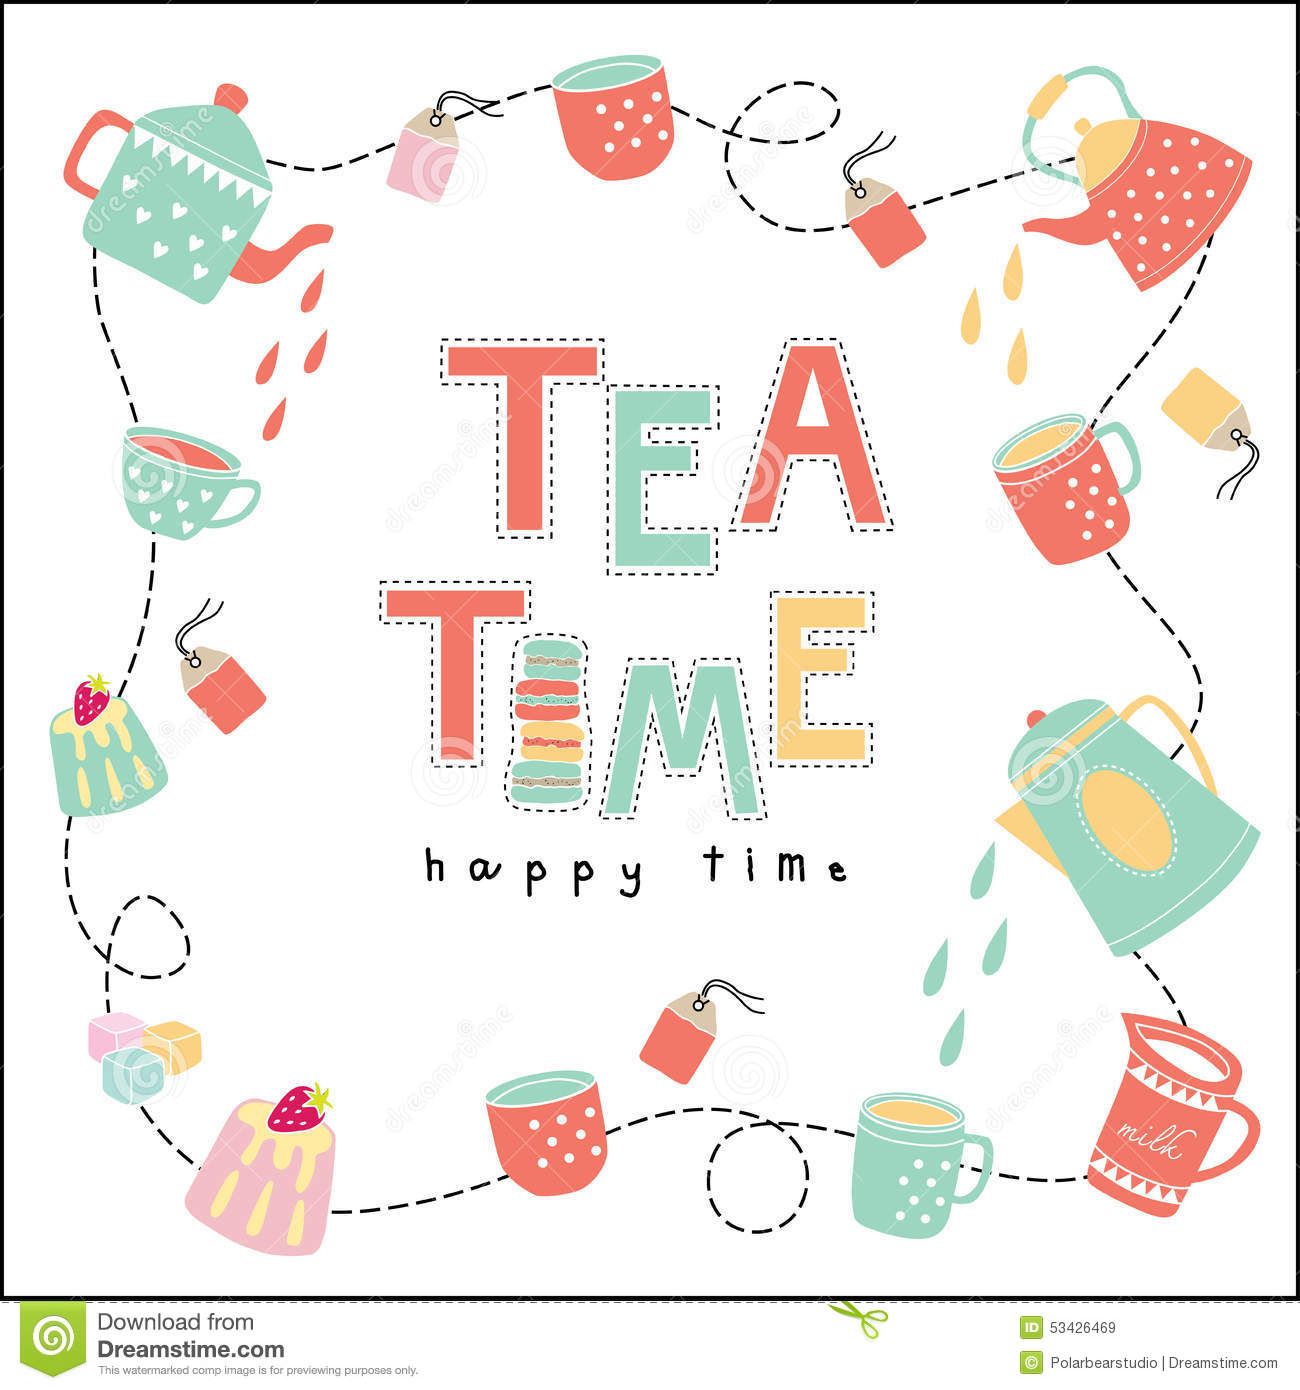 Tea Time Happy Time Doodle Illustration Pastel Color